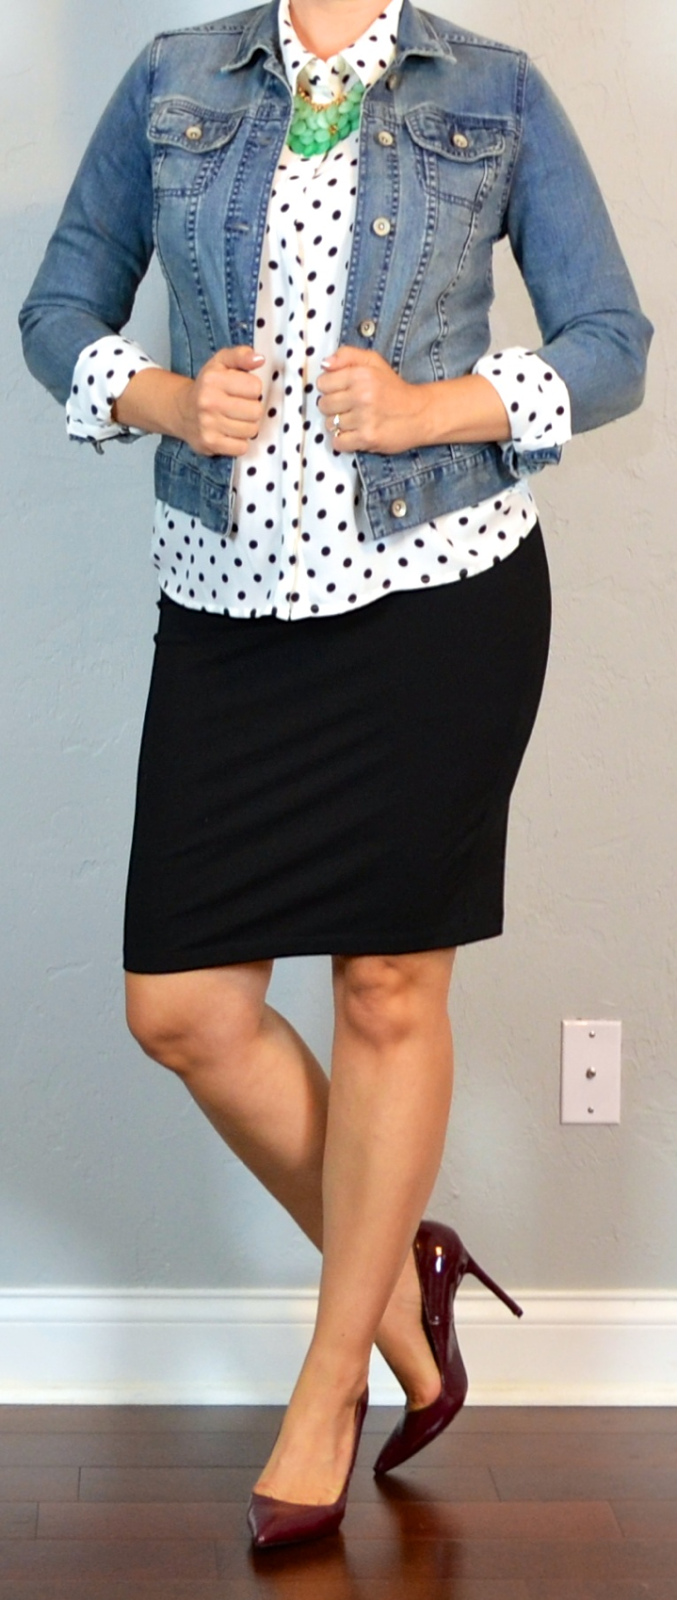 9b18a44053cc outfit post maternity: polka dot blouse, jean jacket, black jersey pencil  skirt